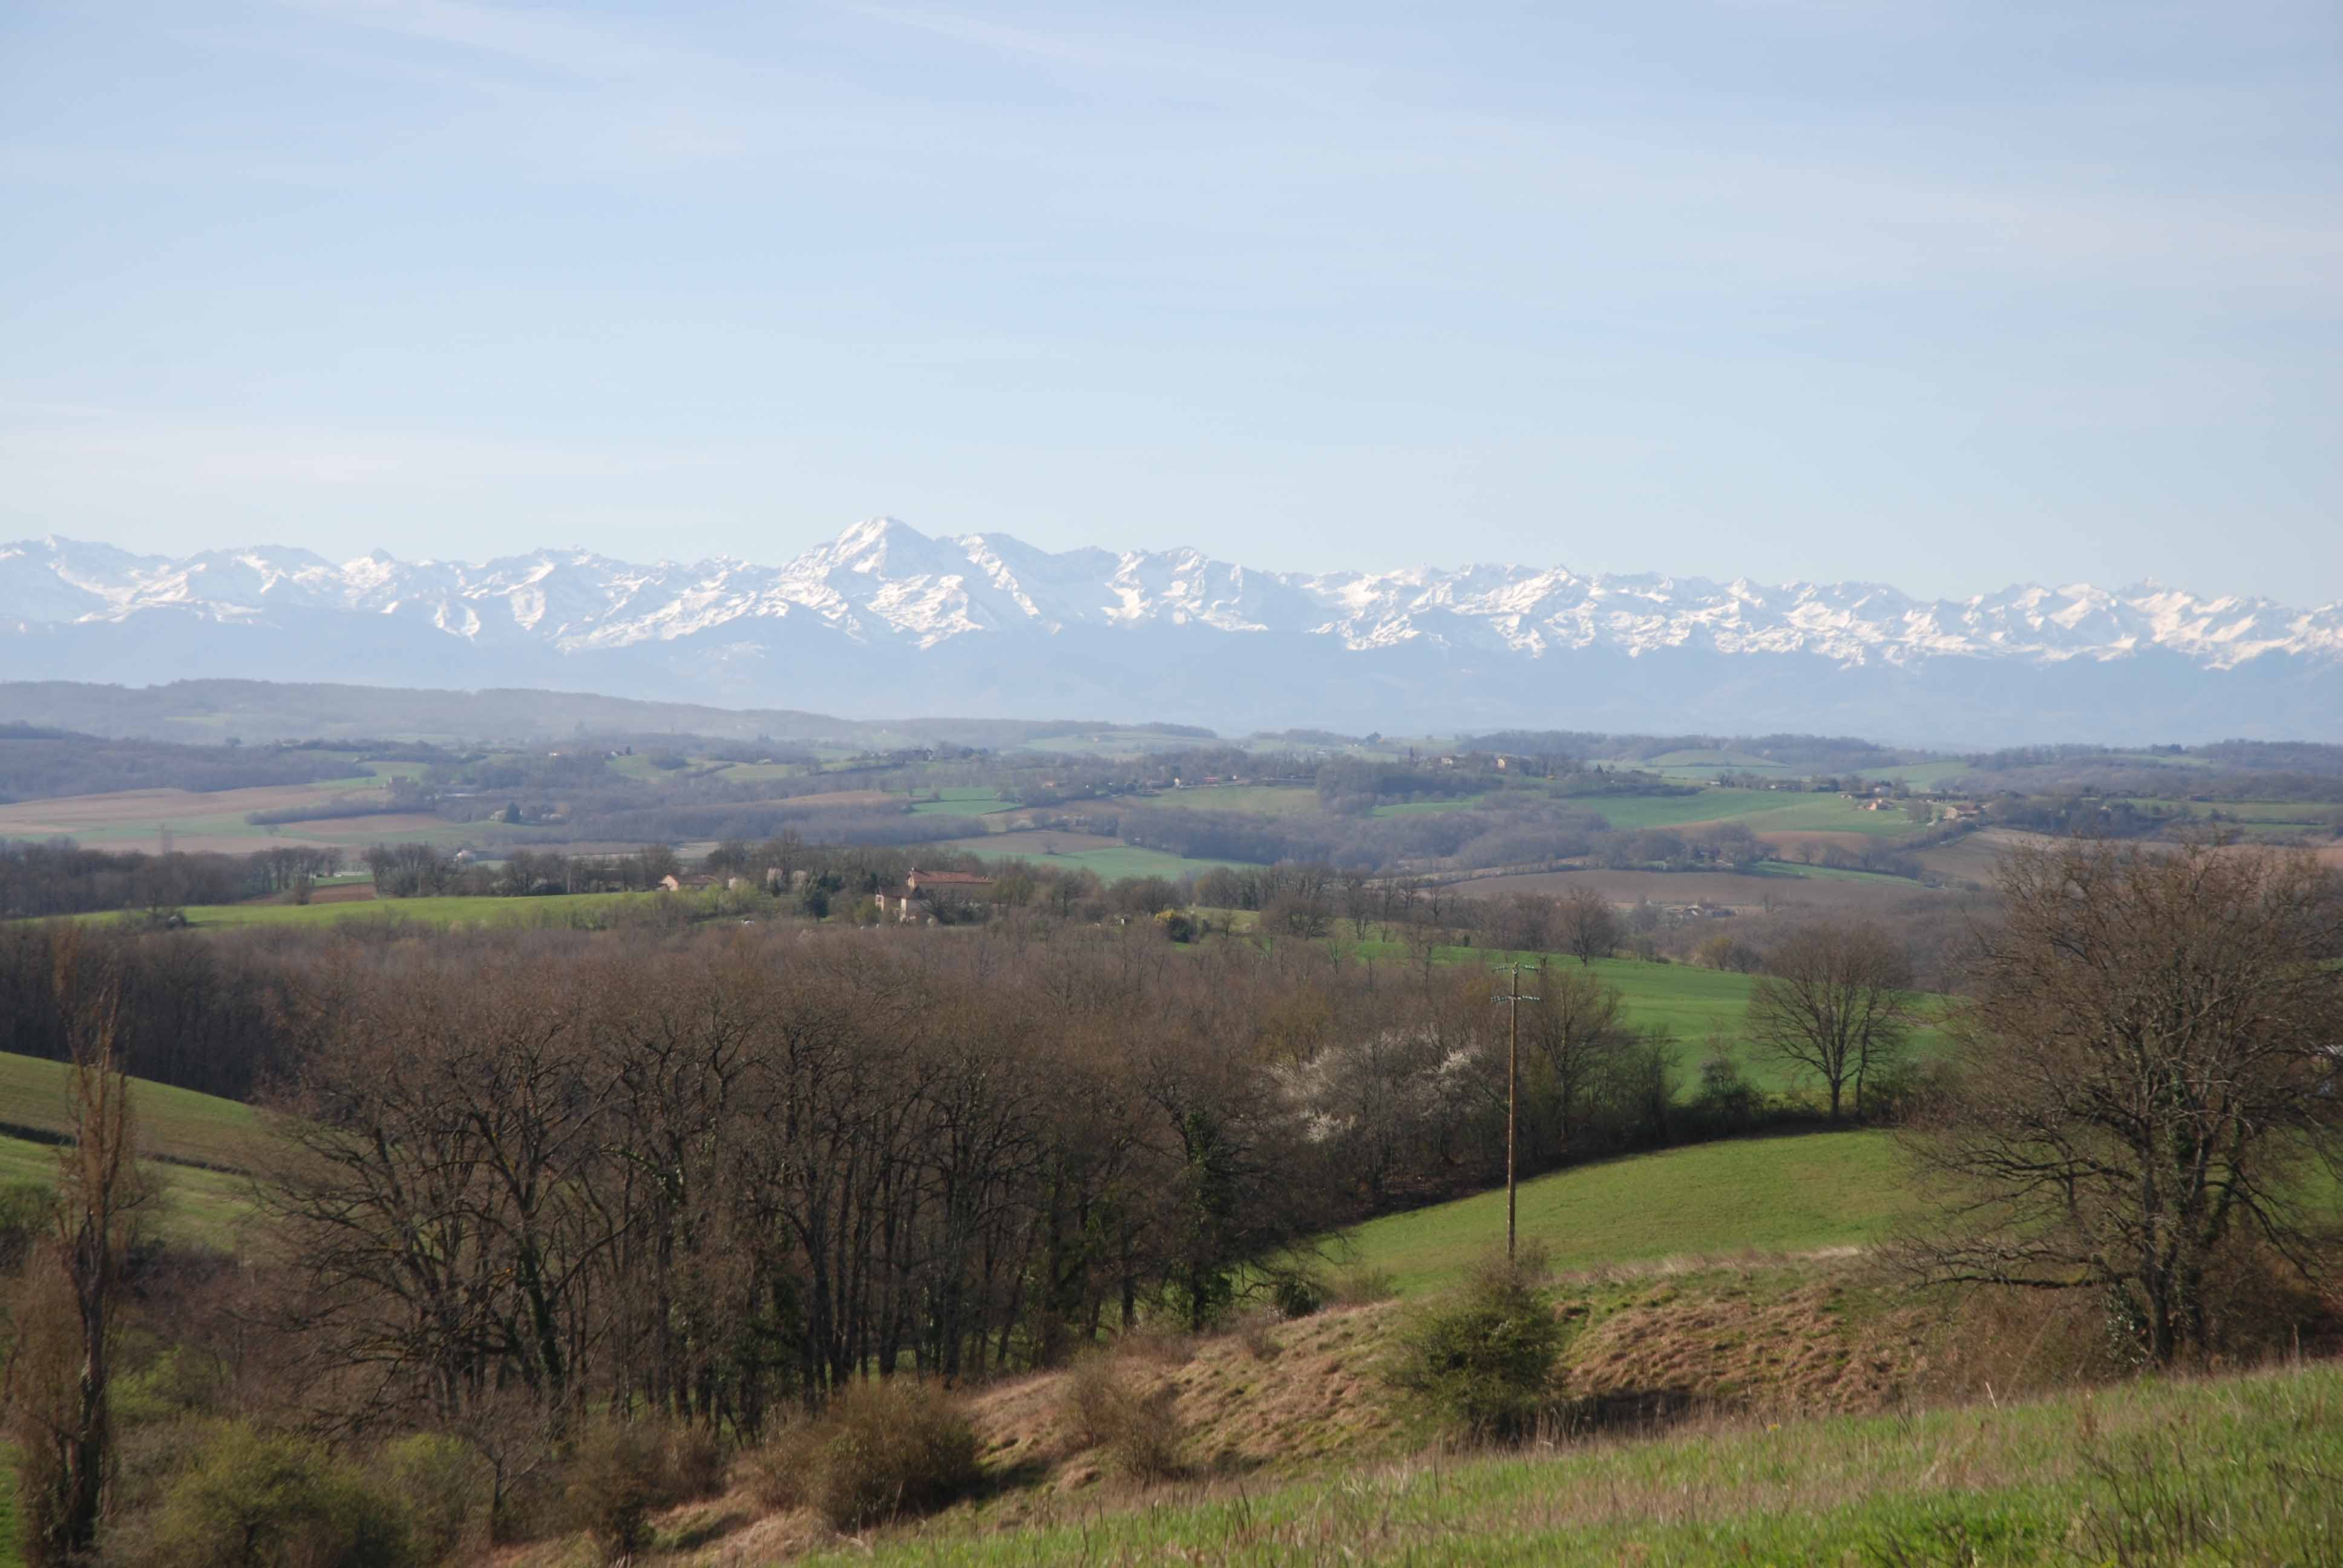 Cycling towards the majestic Pyrenees